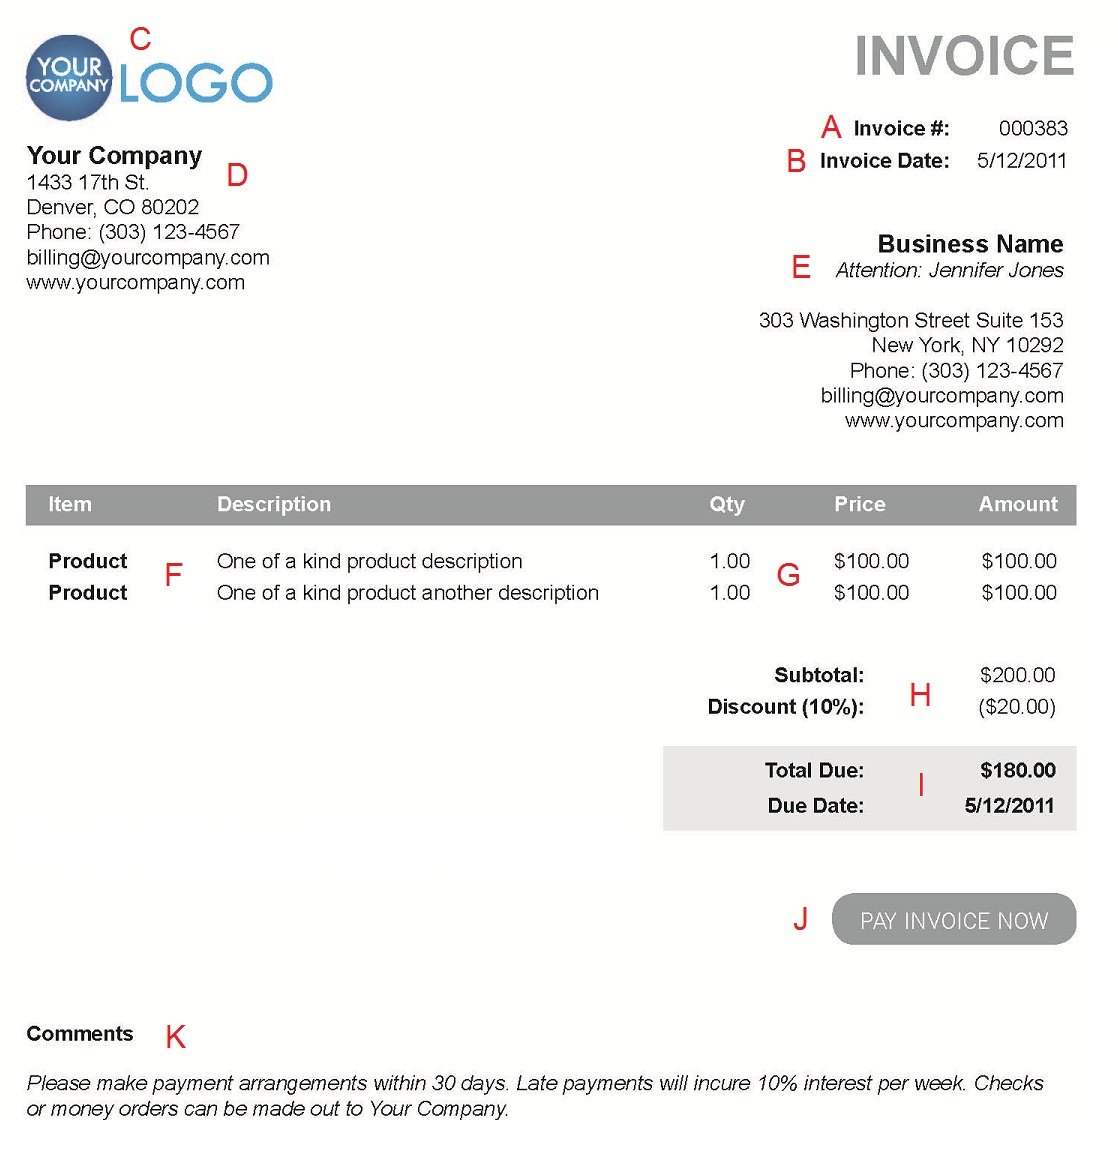 Coolmathgamesus  Ravishing The  Different Sections Of An Electronic Payment Invoice With Lovely A  With Astonishing Invoice Printing Services Also Billing And Invoicing Software In Addition Invoice Forms Templates And Invoice Freelance As Well As Car Invoice Prices By Vin Additionally Pay Your Invoice From Paysimplecom With Coolmathgamesus  Lovely The  Different Sections Of An Electronic Payment Invoice With Astonishing A  And Ravishing Invoice Printing Services Also Billing And Invoicing Software In Addition Invoice Forms Templates From Paysimplecom